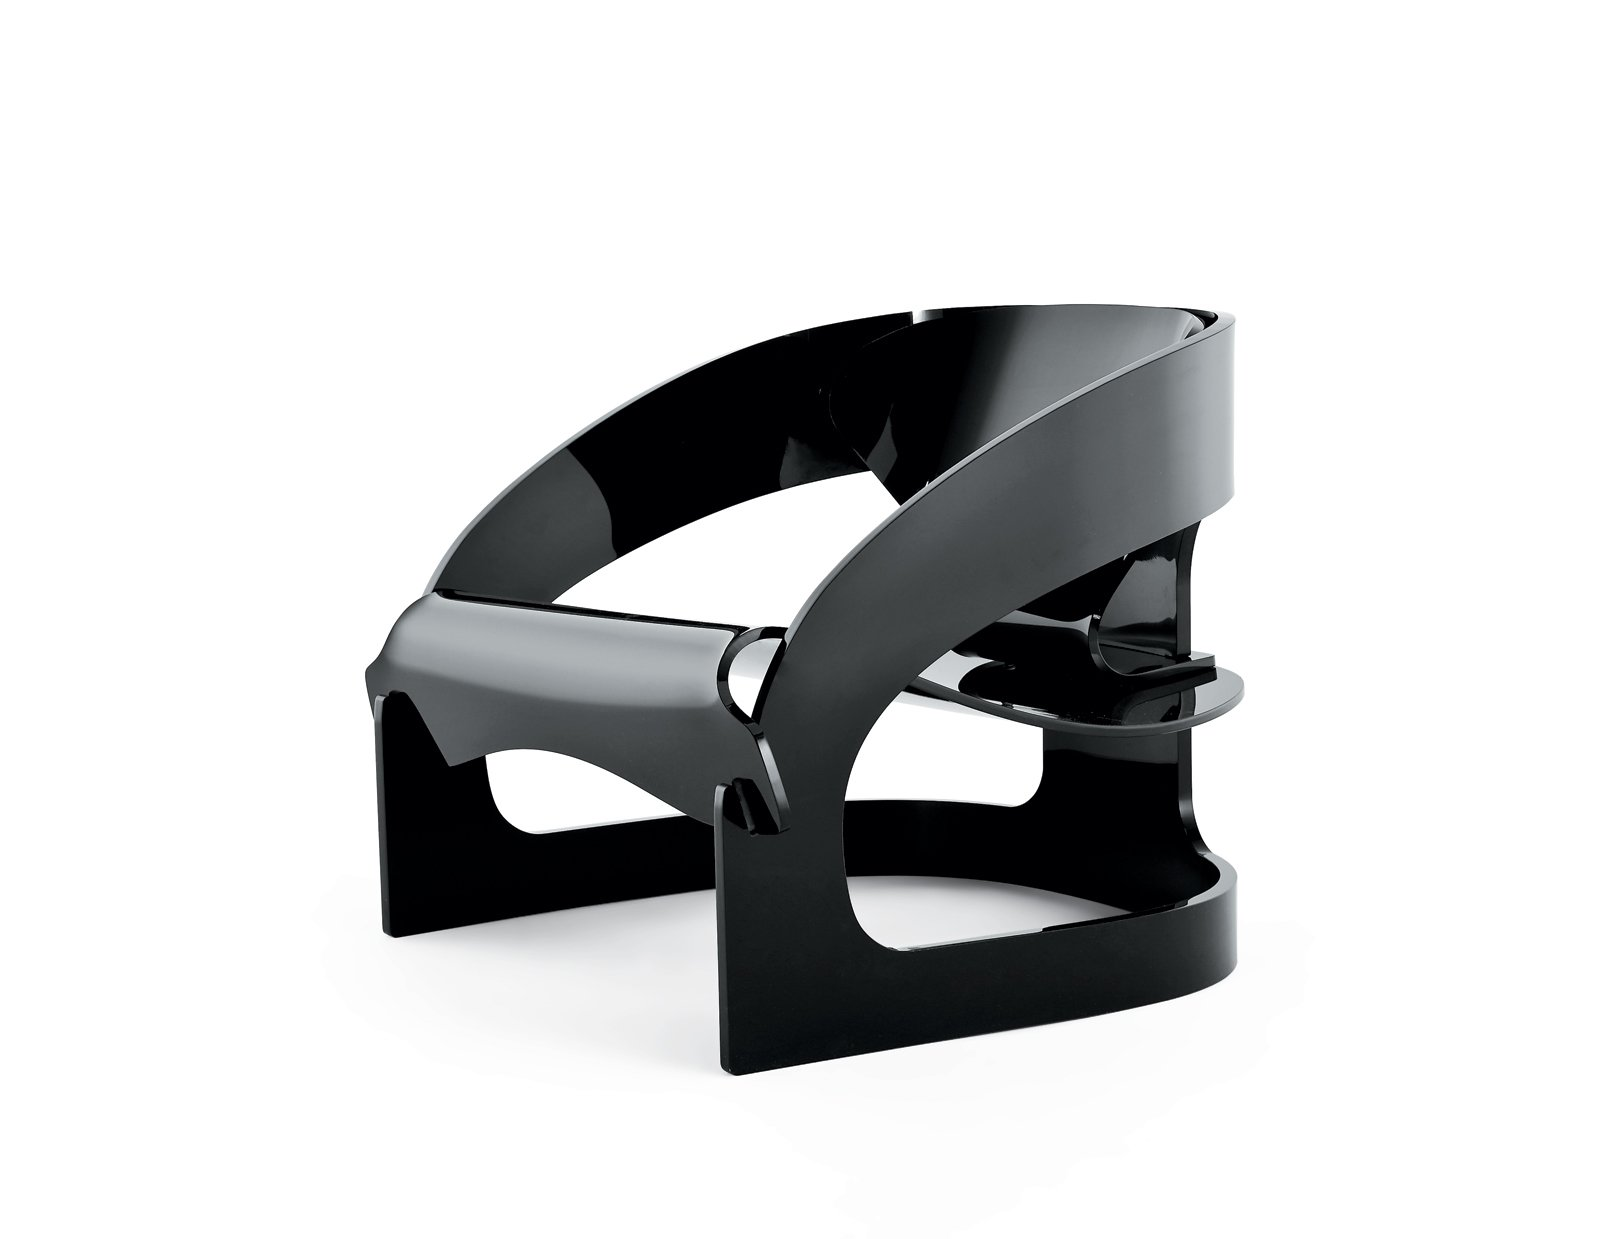 """The design has been reproduced in black, white, and crystal-clear plastic in the same proportions as Colombo's original, a process that Kartell treated with reverence, according to CEO Claudio Luti: """"We have been reluctant to approach re-editions because they may not be respectful of the original. This new chair is just the right balance between celebrating the past and making it topical in today's world.""""  Search """"joe colombo 4801 armchair"""" from Back to the Future"""